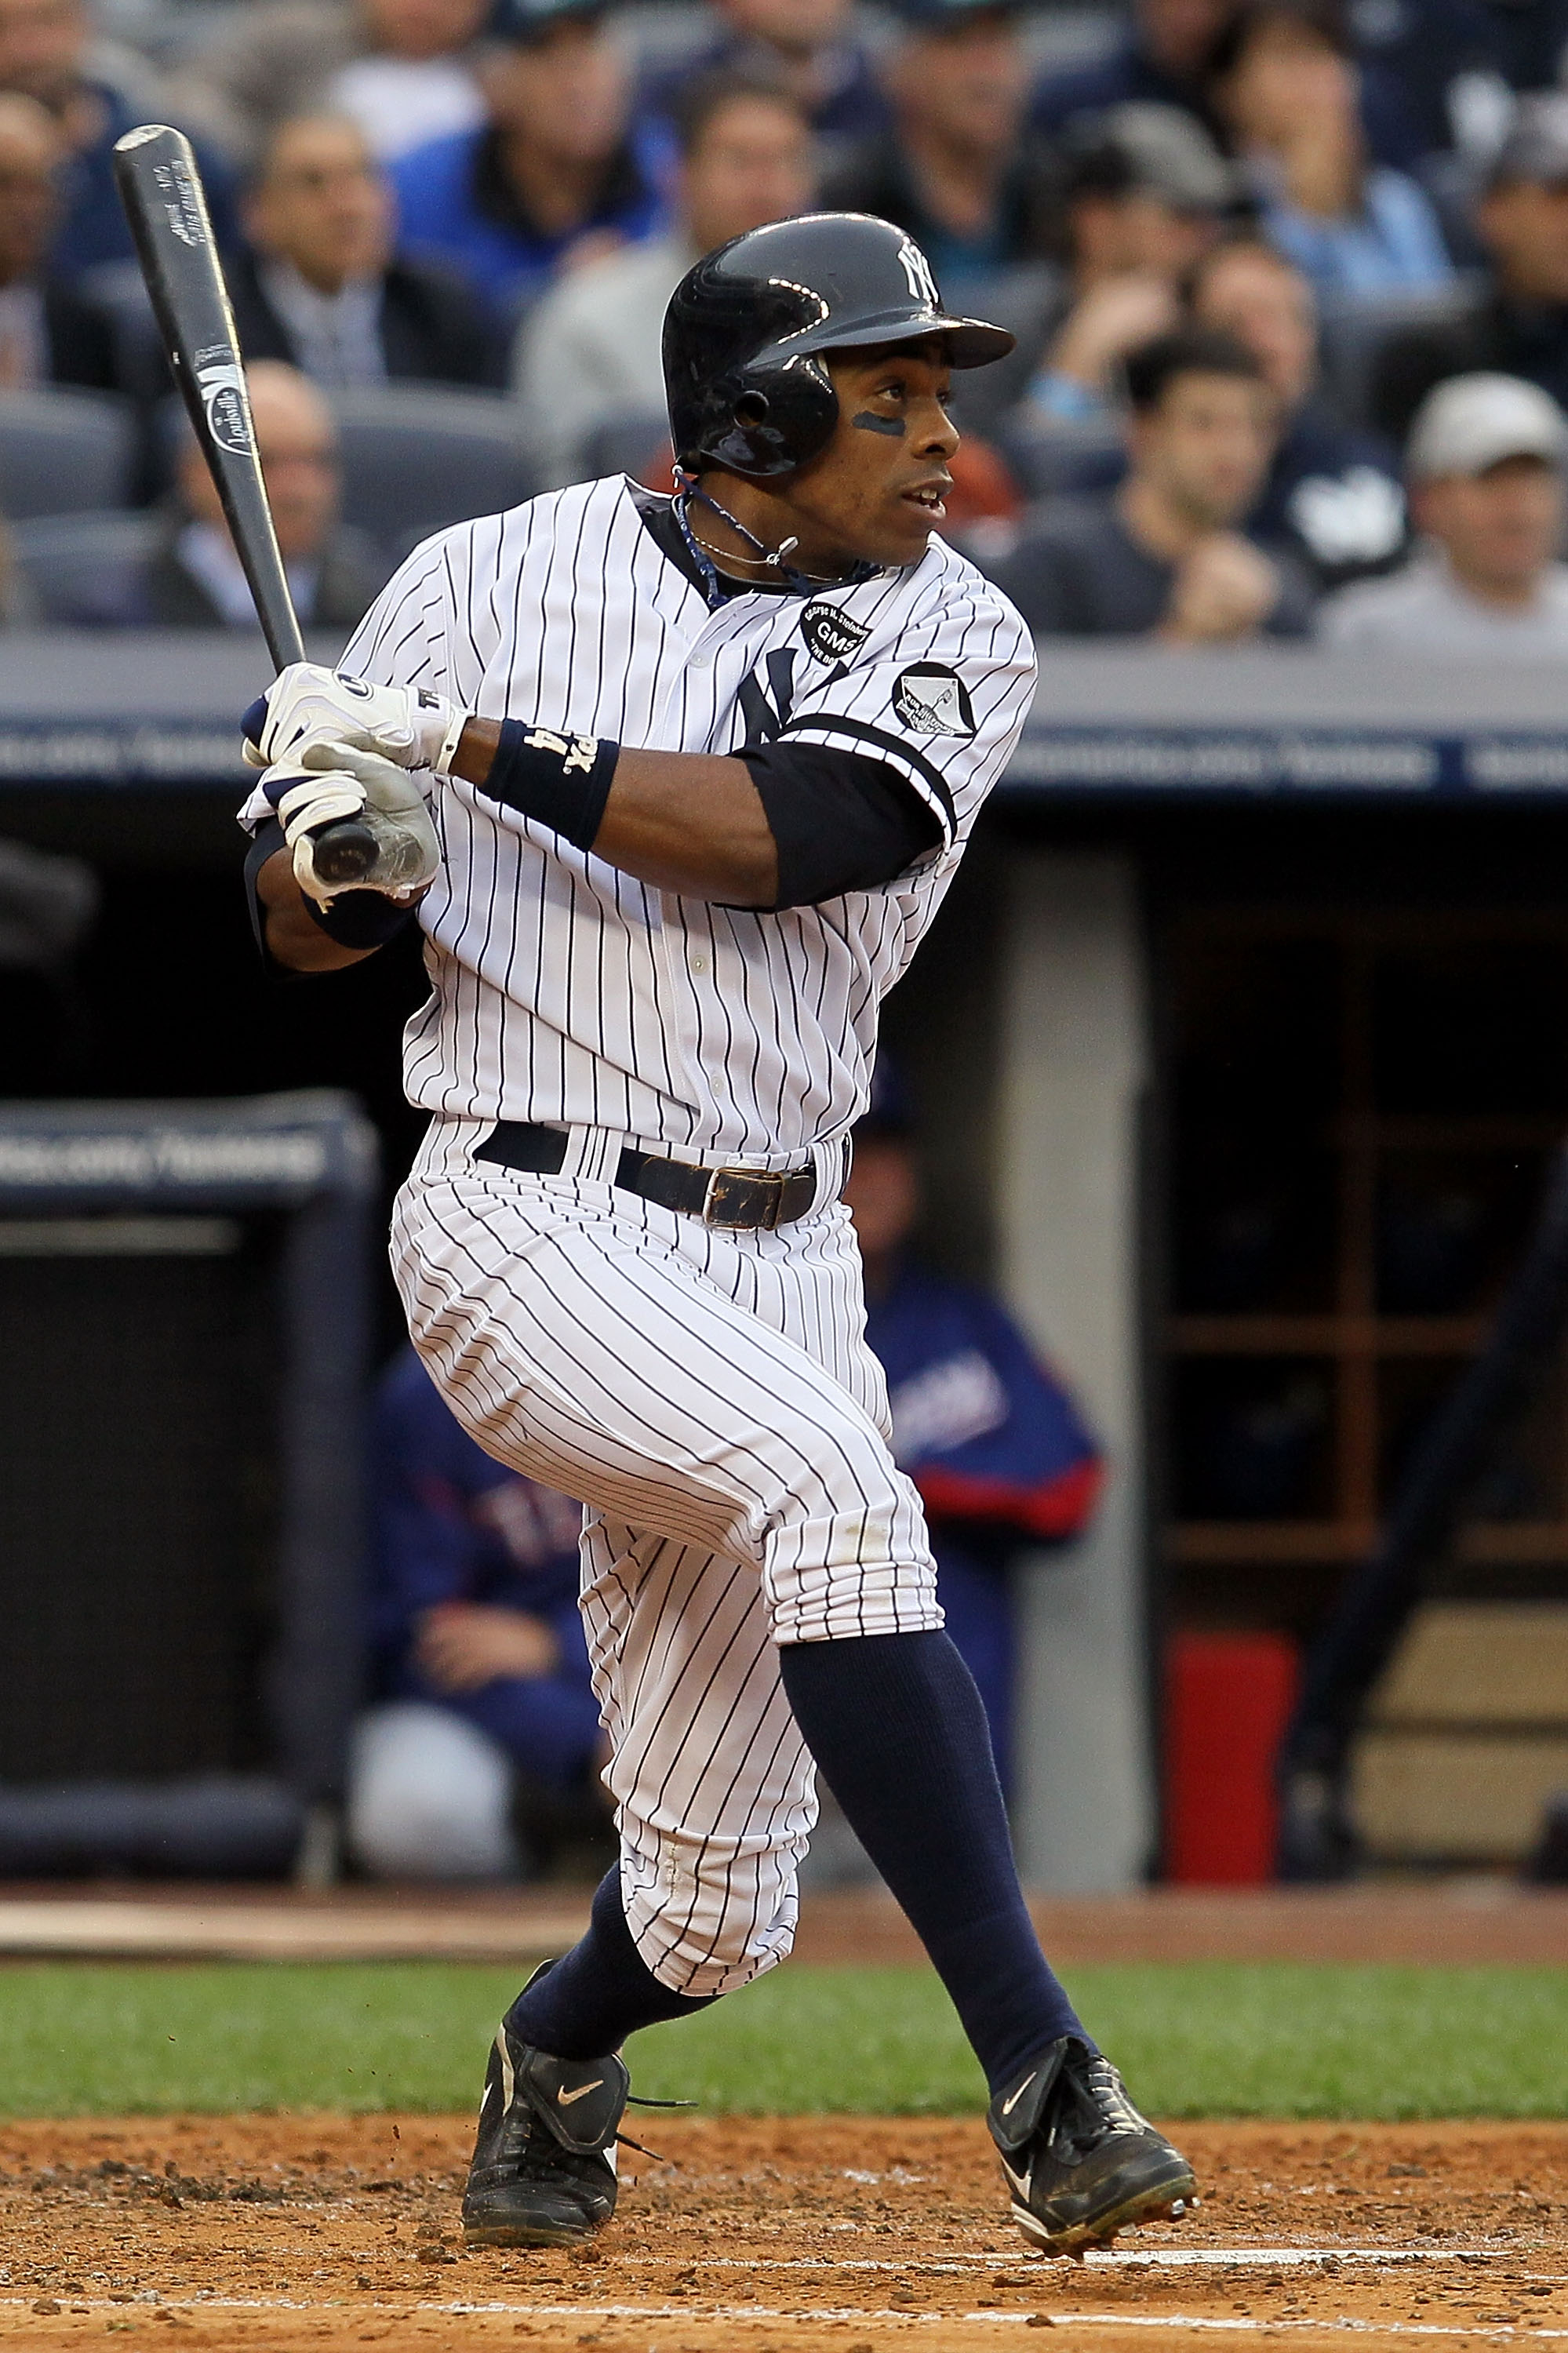 NEW YORK - OCTOBER 20:  Curtis Granderson #14 of the New York Yankees hits a single in the bottom of the second inning against the Texas Rangers in Game Five of the ALCS during the 2010 MLB Playoffs at Yankee Stadium on October 20, 2010 in the Bronx borou